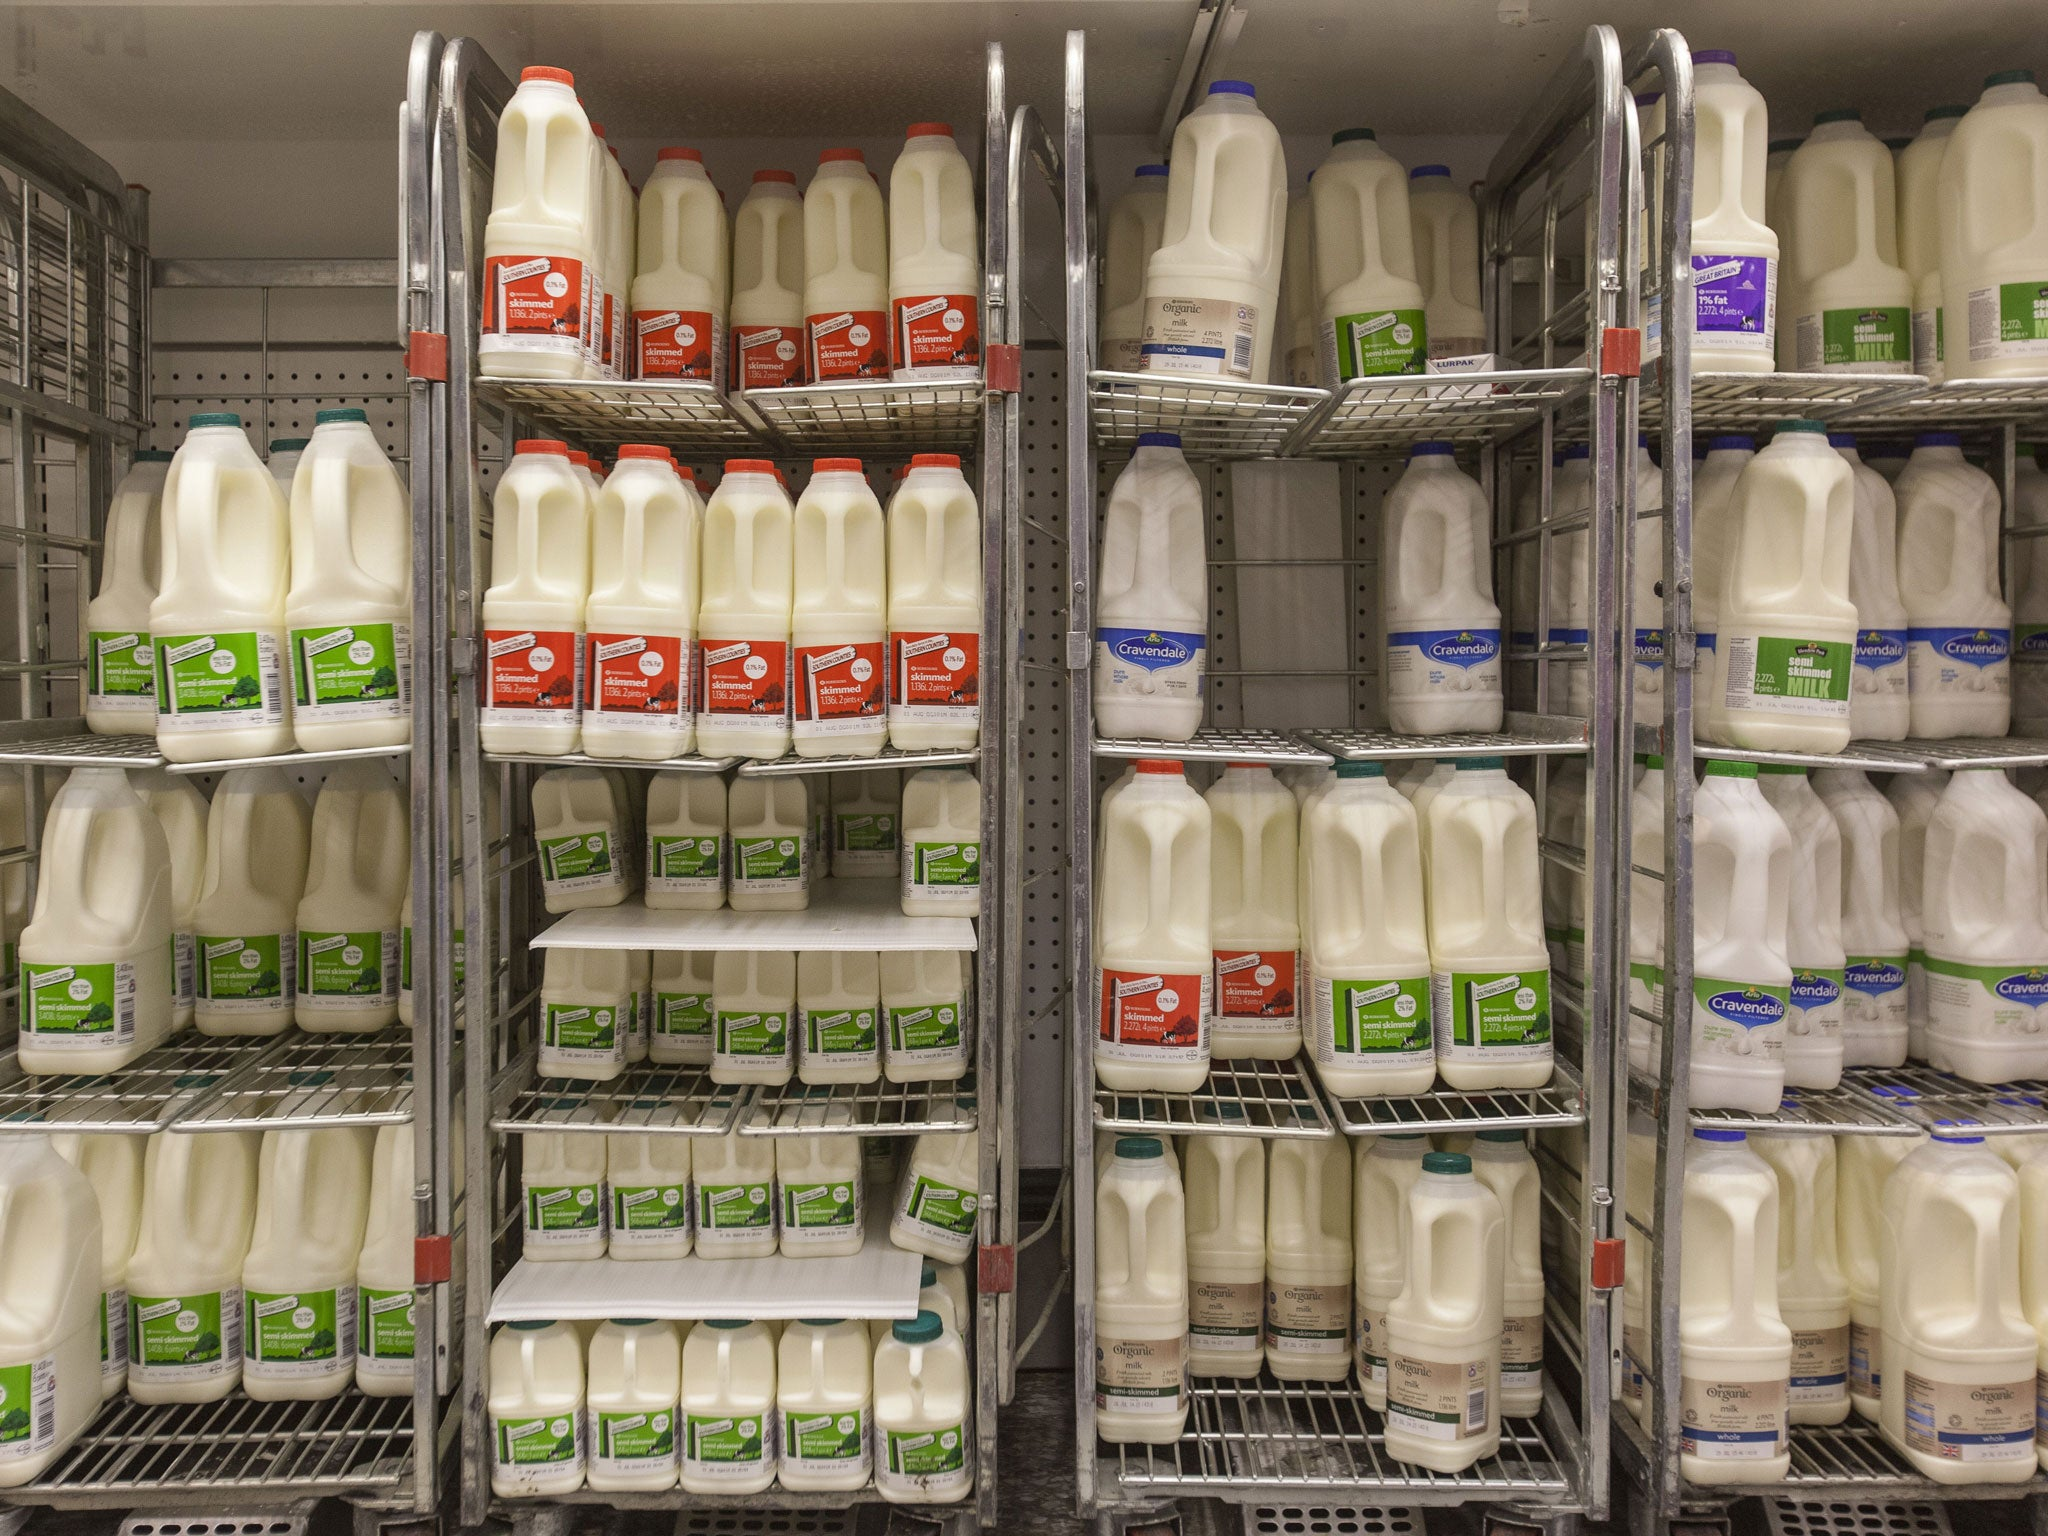 milk and supermarkets Getting milked bay area supermarkets charge too much for milk elisa odabashian senior policy analyst west coast office july, 2004.